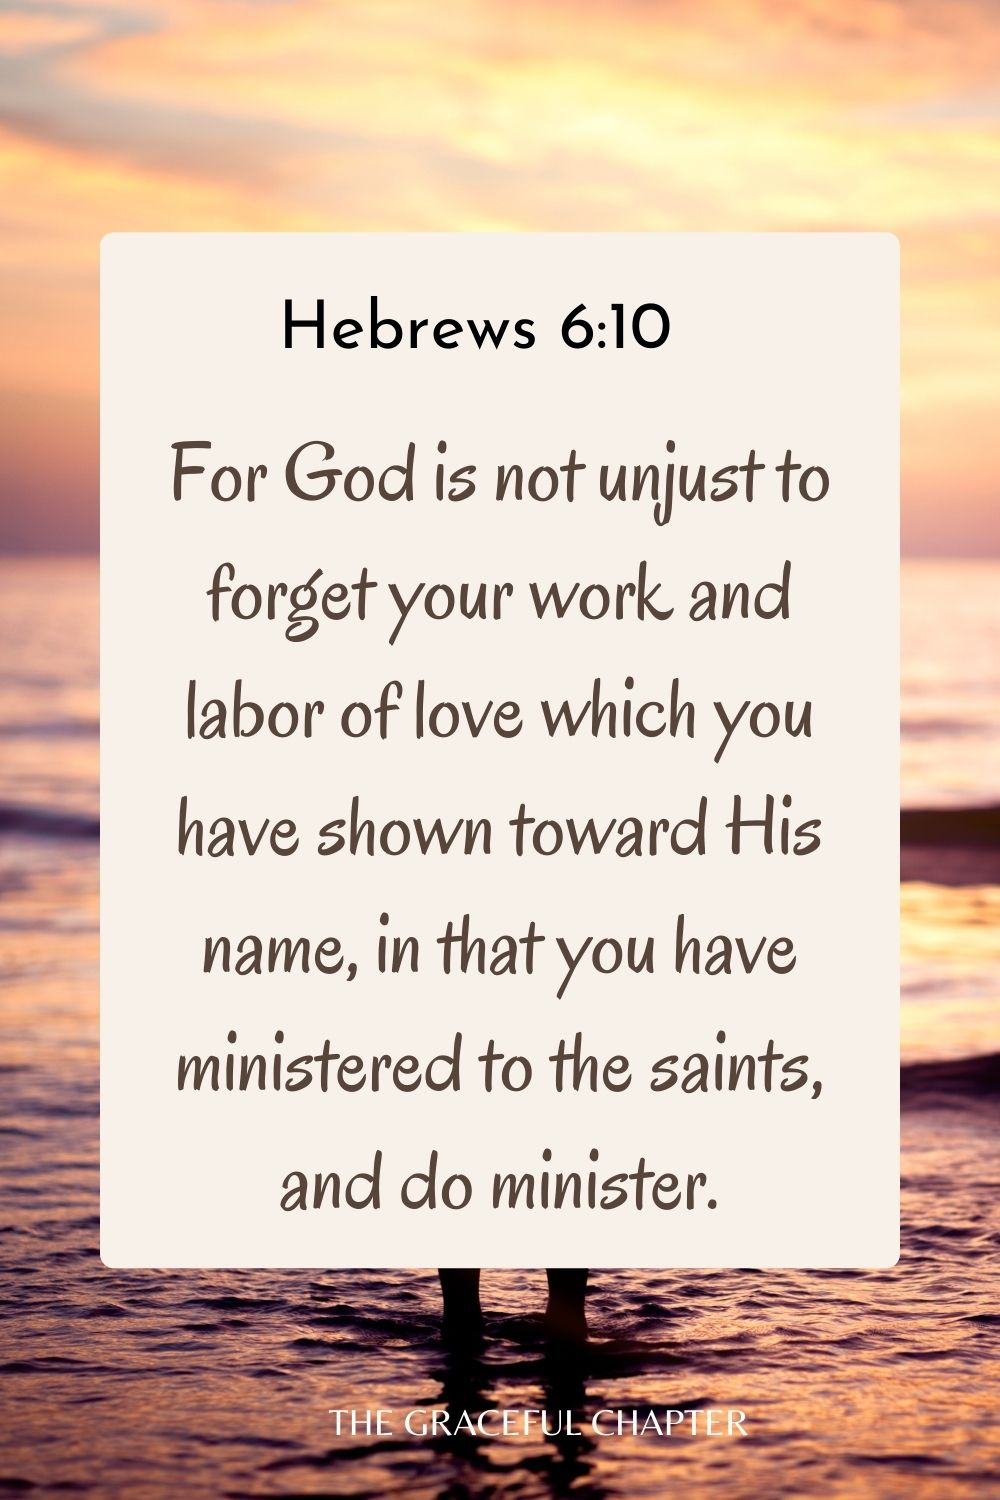 For God is not unjust to forget your work and labor of love which you have shown toward His name, in that you have ministered to the saints, and do minister. Hebrews 6:10